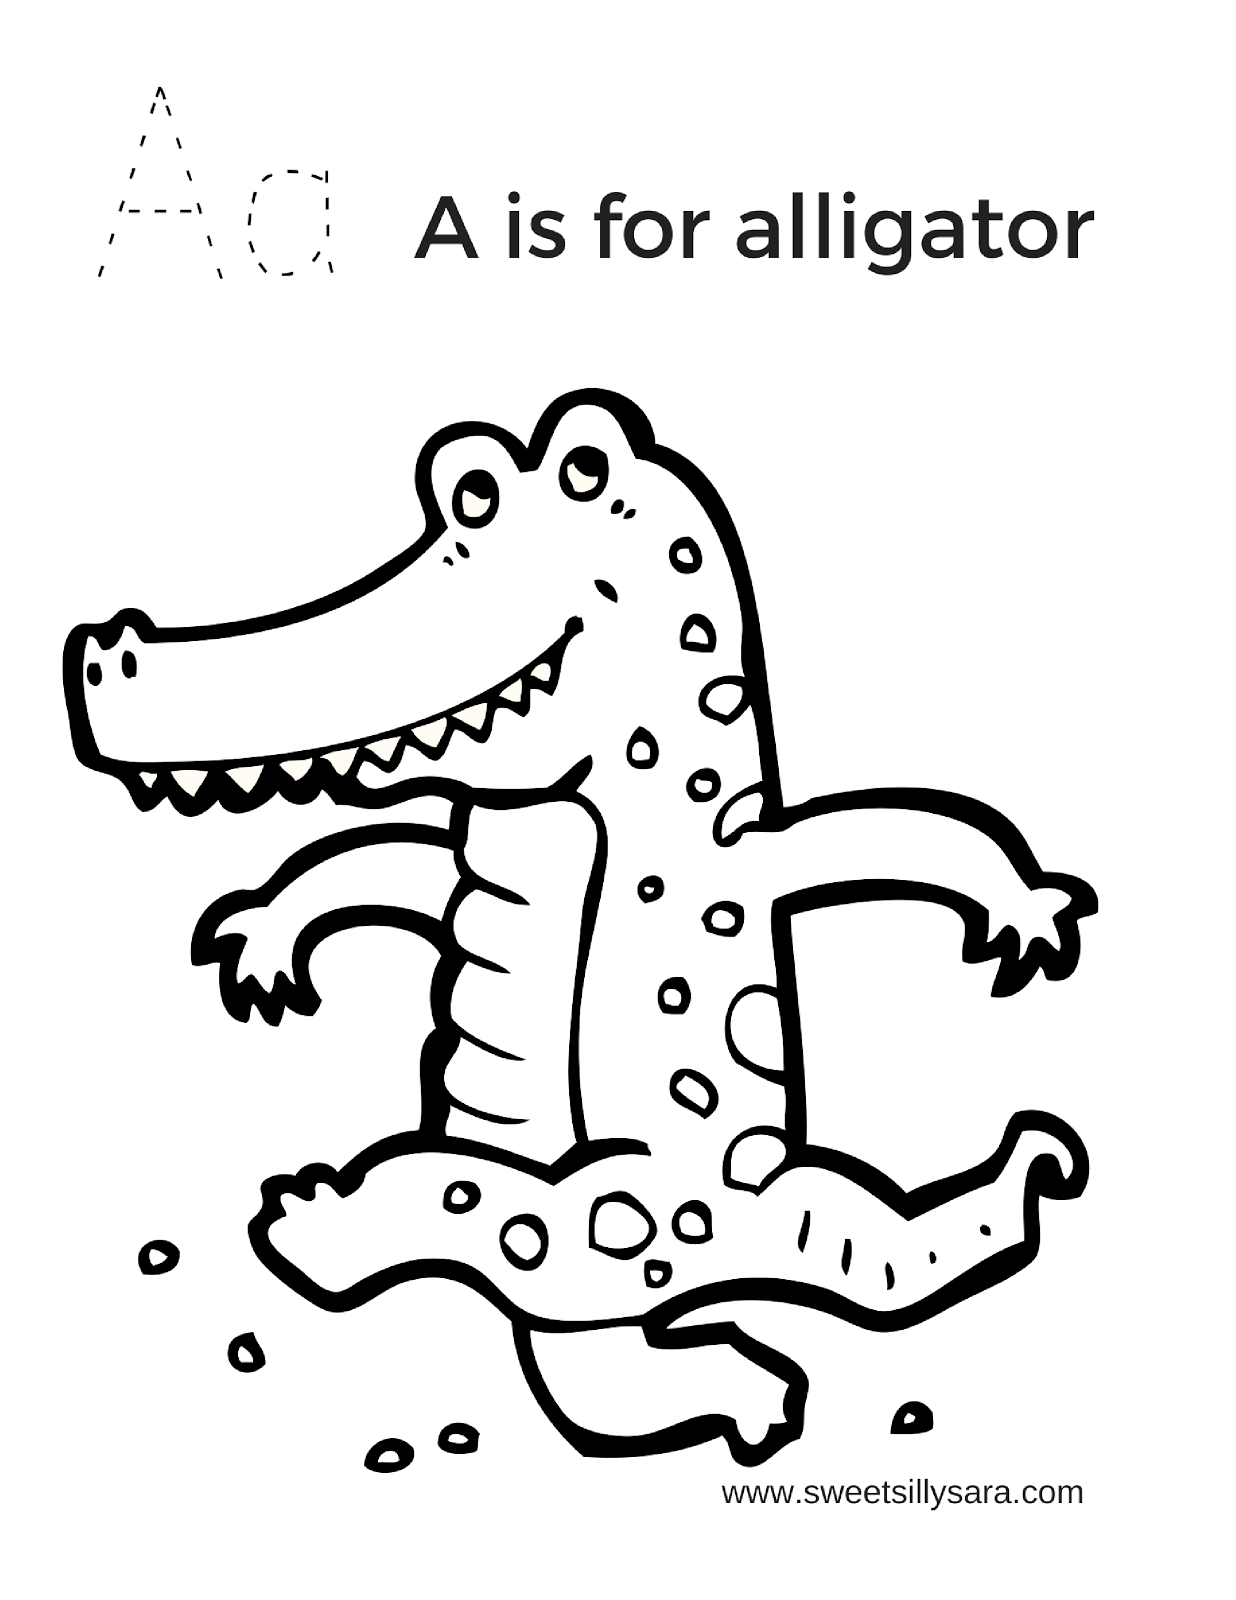 a for alligator coloring page letter a is for alligator coloring page free printable alligator a for page coloring